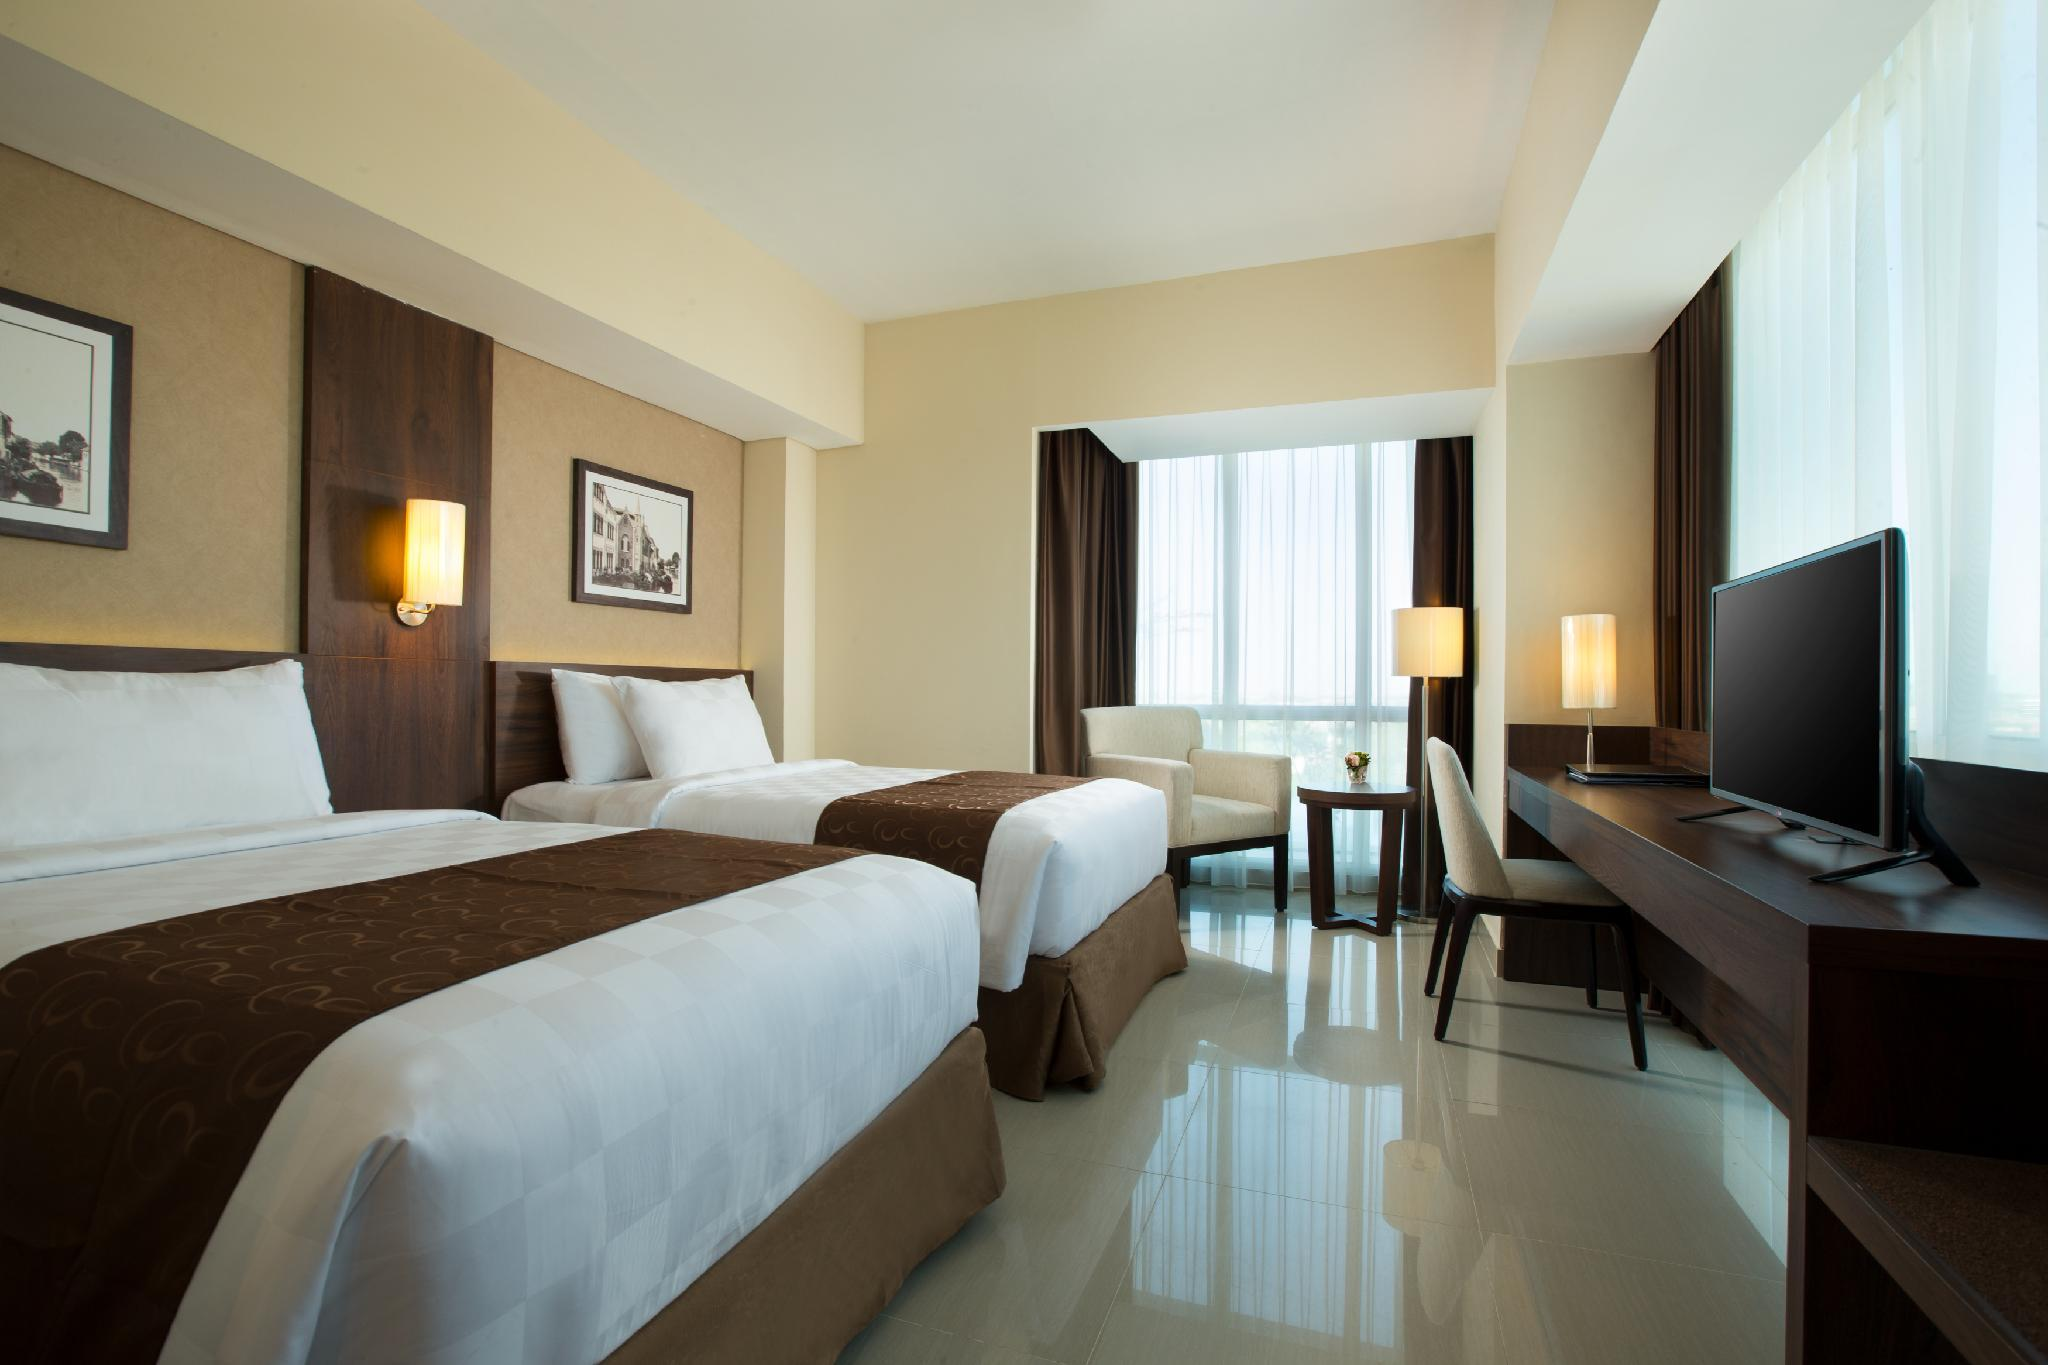 市景高級房(2張單人床) - 附歐式早餐/禁菸 (Superior Room with 2 Single Beds City View Non Smoking with Continental Breakfast)